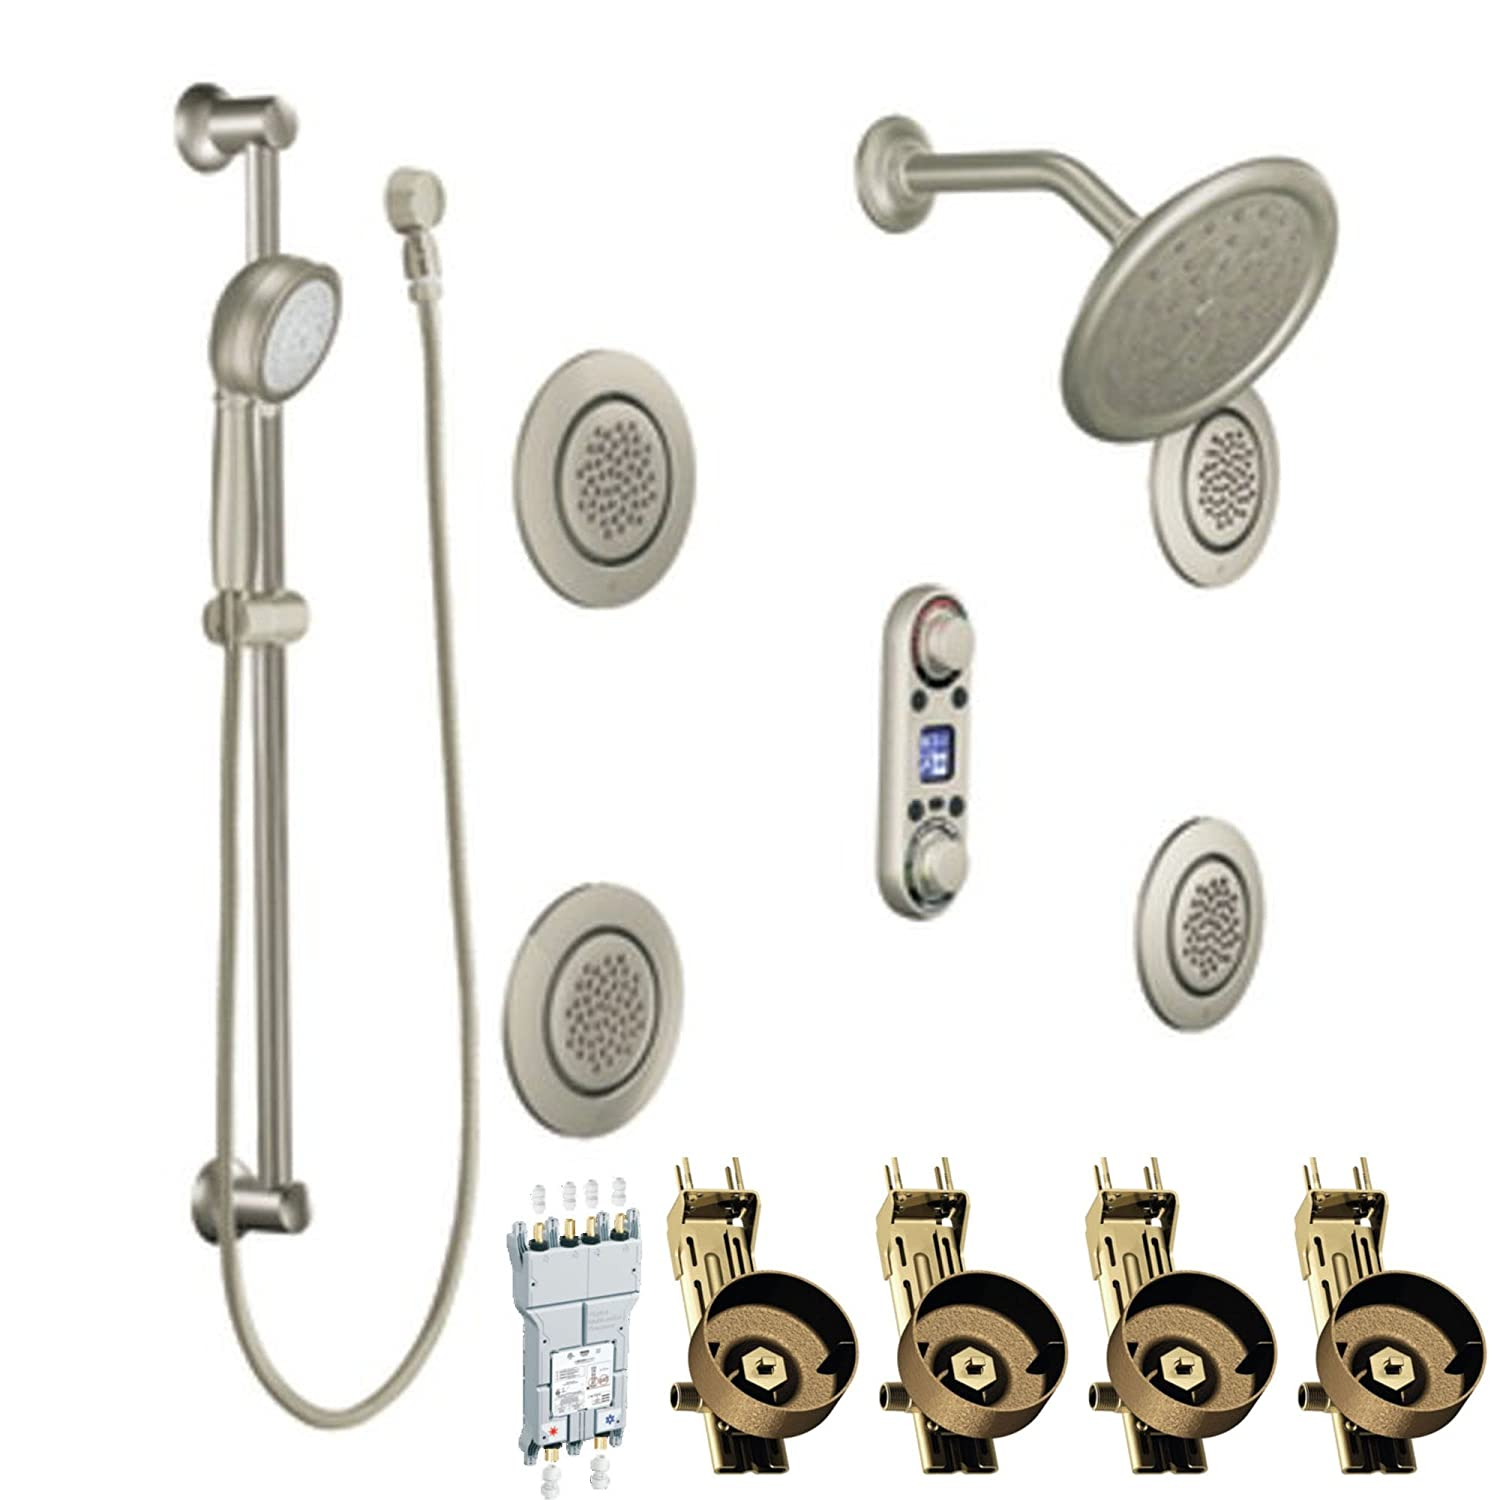 Moen TS296BN IoDIGITAL Vertical Spa Kit With Valves, Brushed Nickel   Shower  Installation Kits   Amazon.com